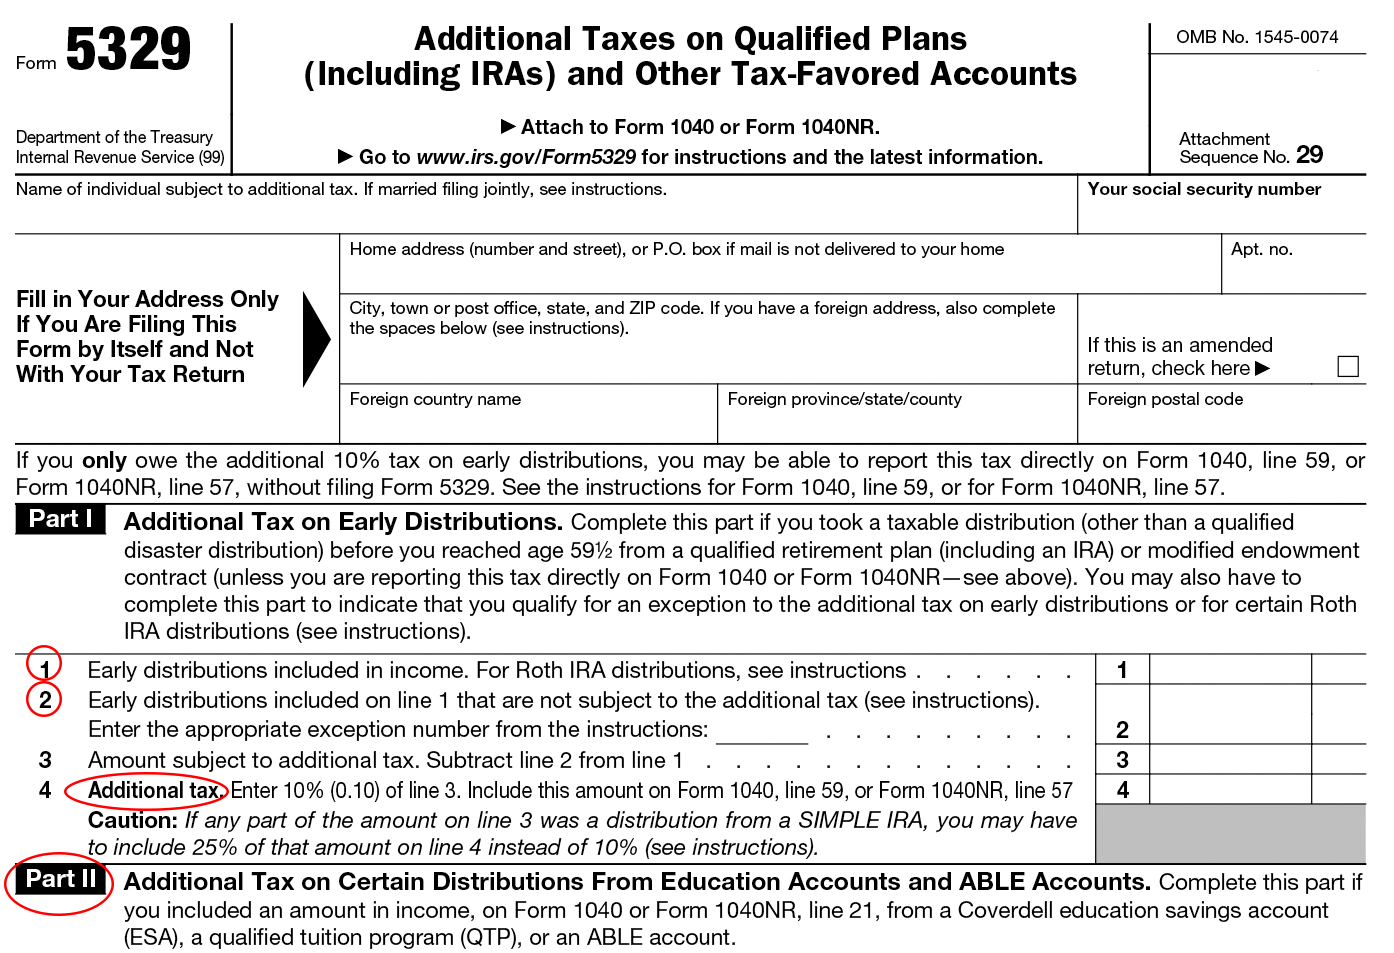 Form 5329: Instructions & Exception Information for IRS Form 5329